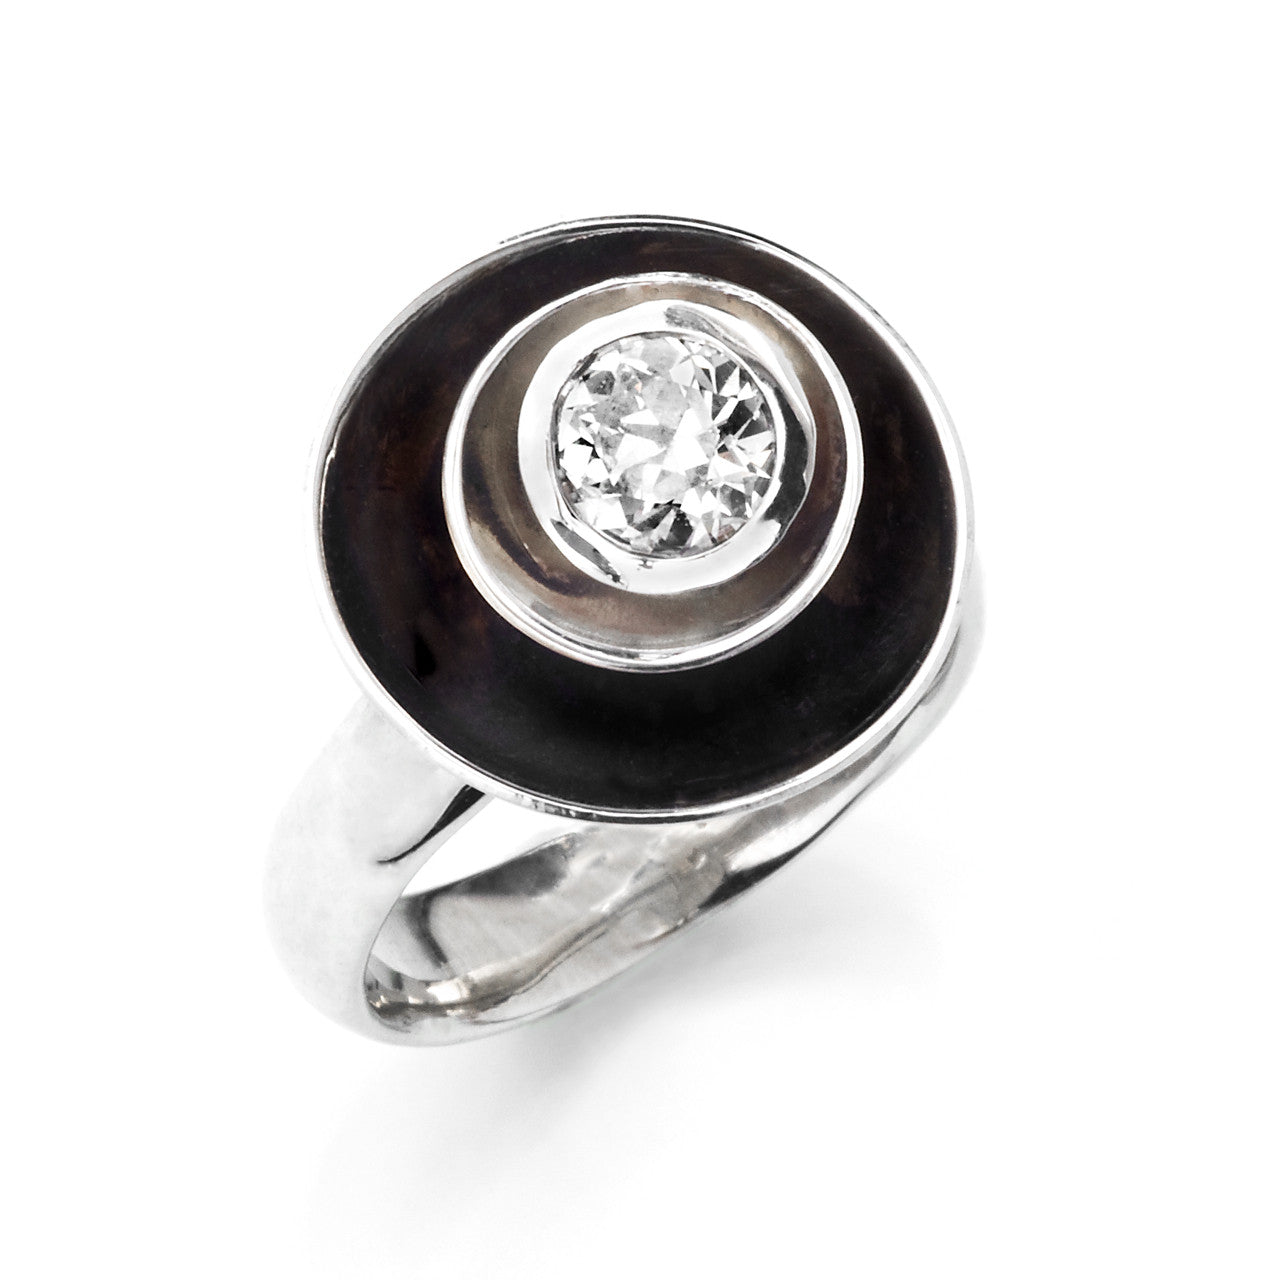 Concentric Satellite Cocktail Ring with Diamond